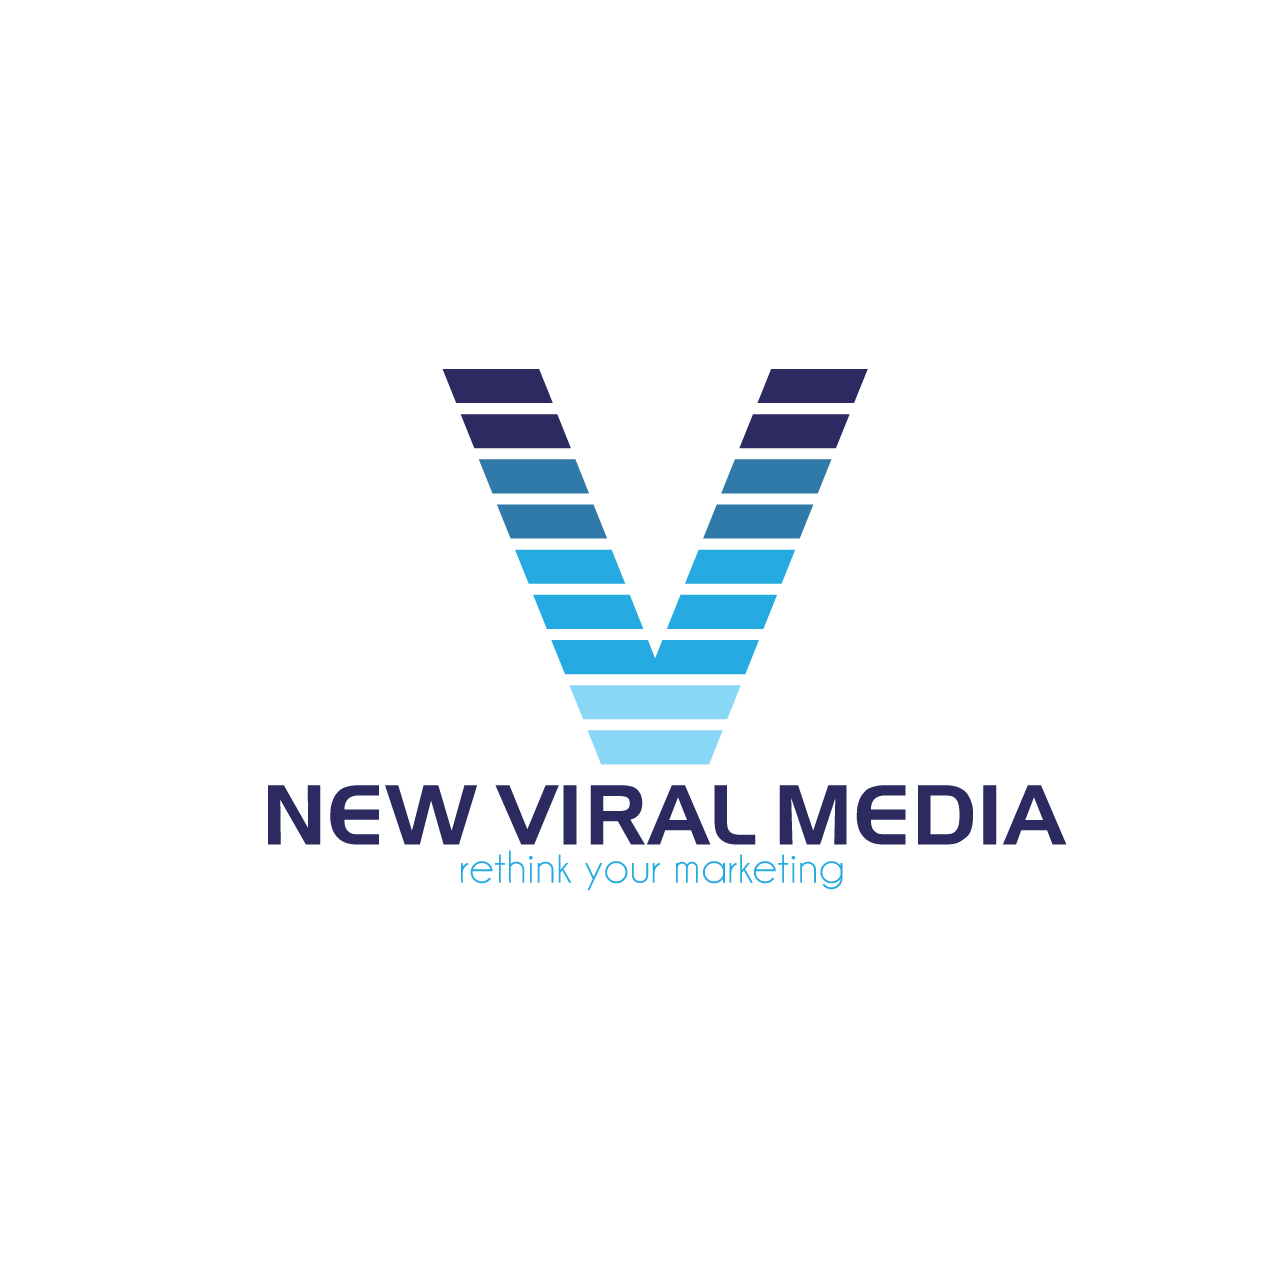 Logo Design by Private User - Entry No. 107 in the Logo Design Contest New Viral Media Logo.